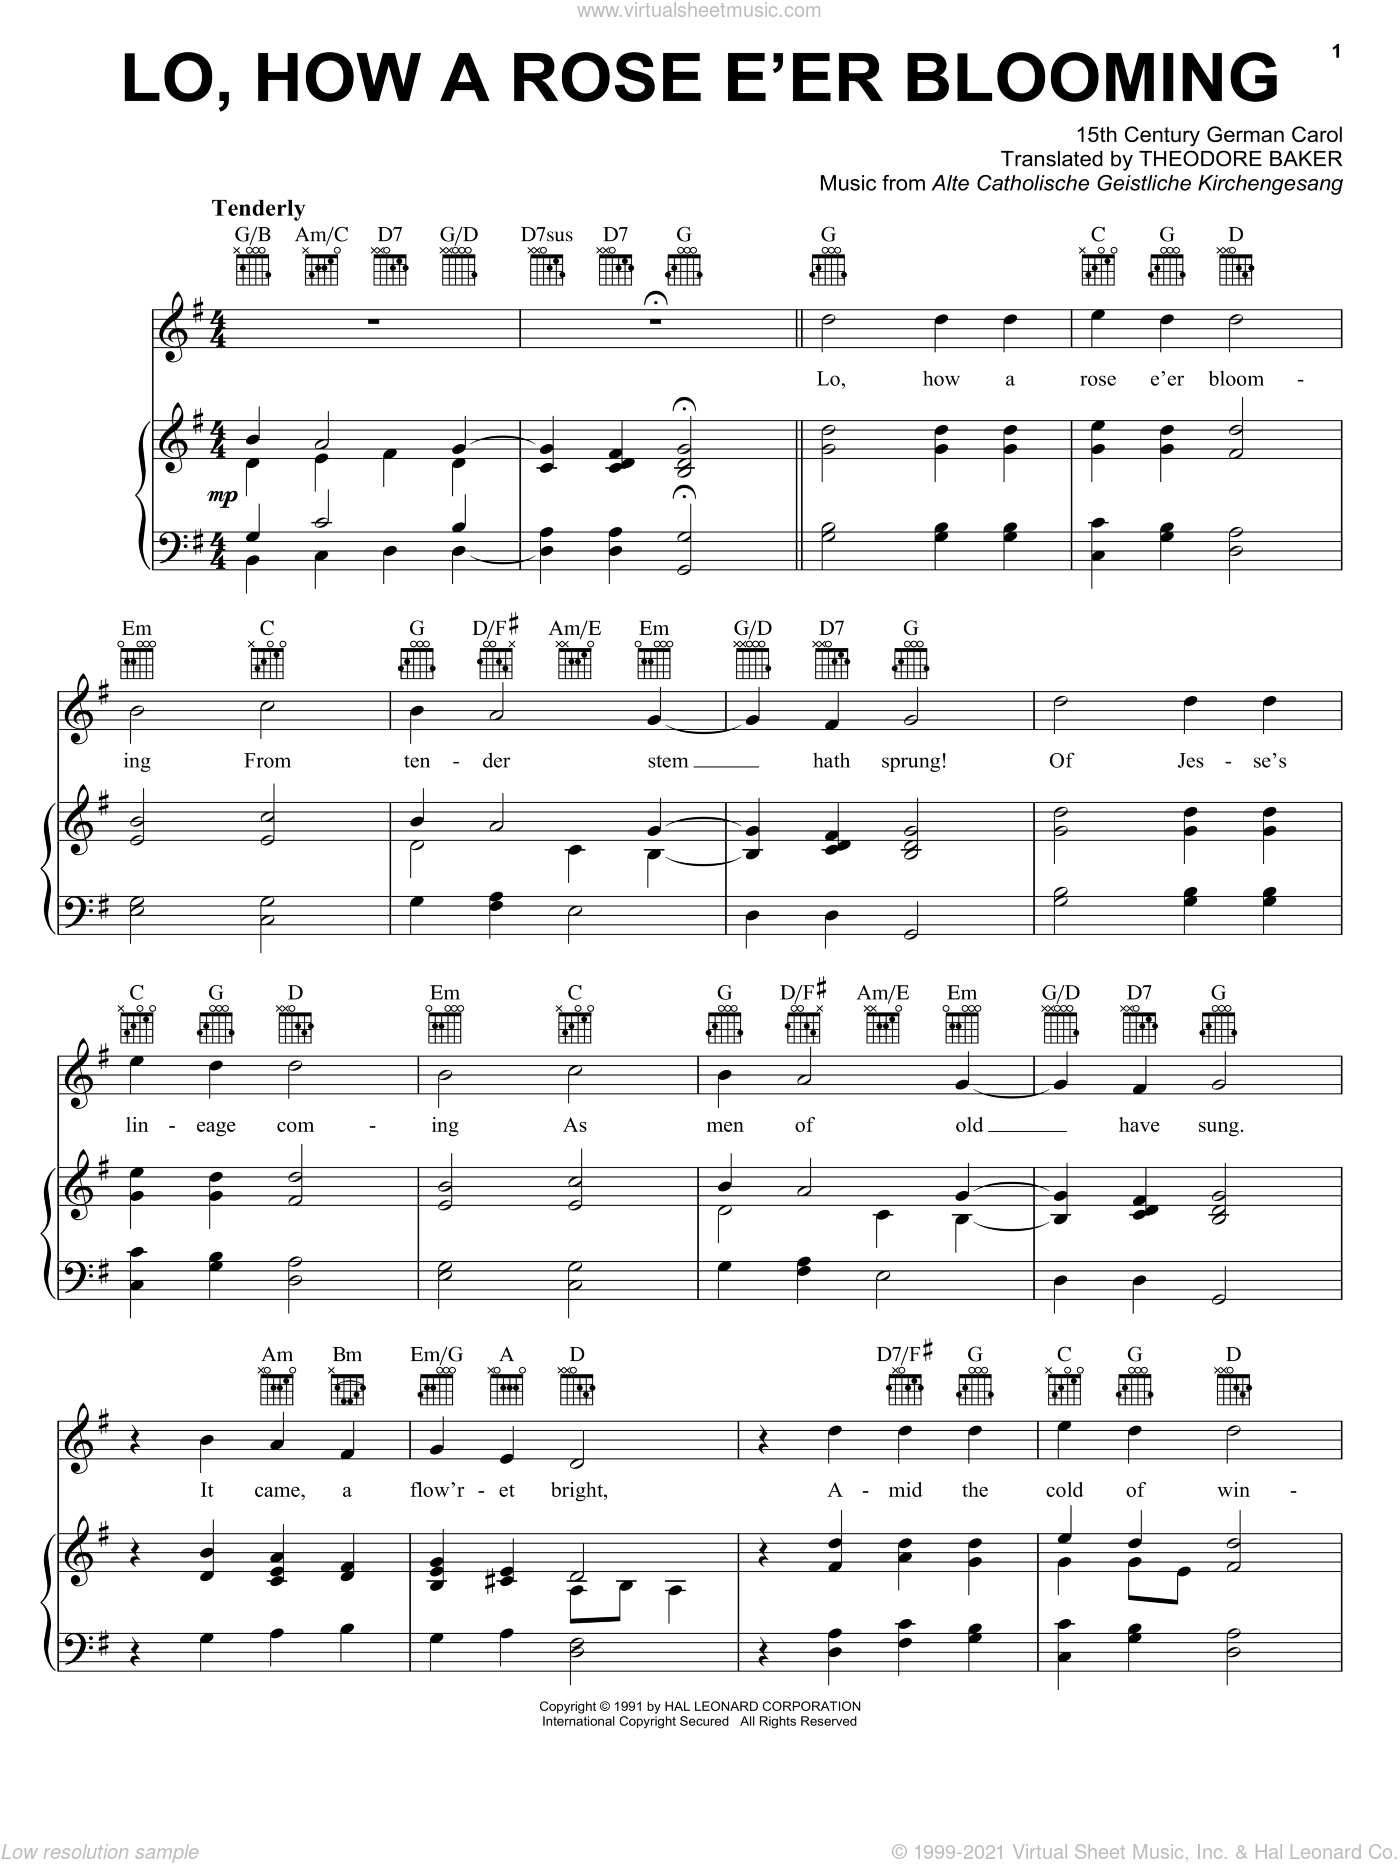 Lo, How A Rose E'er Blooming sheet music for voice, piano or guitar by Anonymous and Theodore Baker. Score Image Preview.